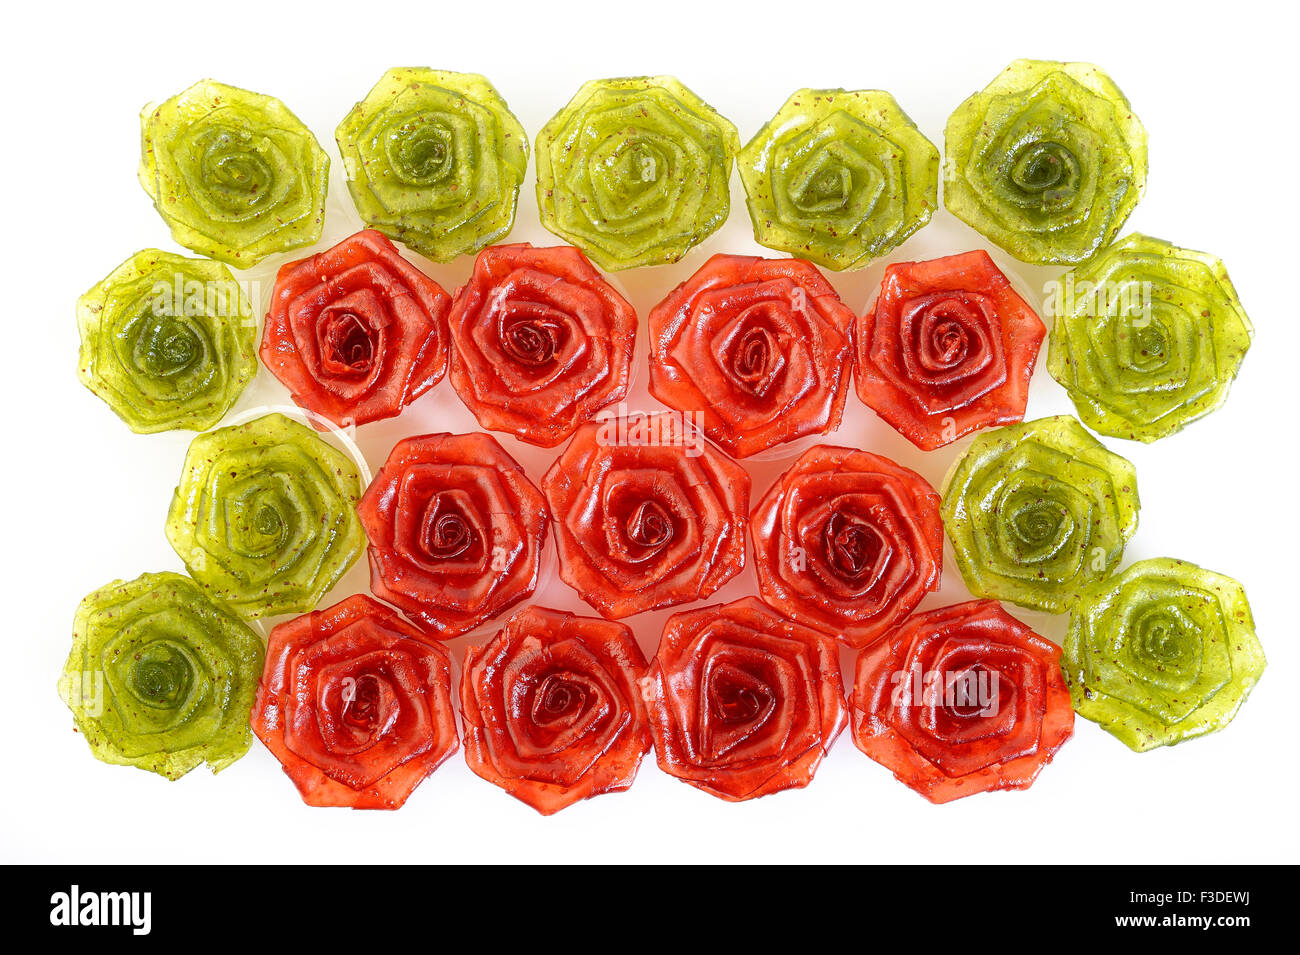 kiwi and strawberry jam pastry in the form of rose on white background - Stock Image